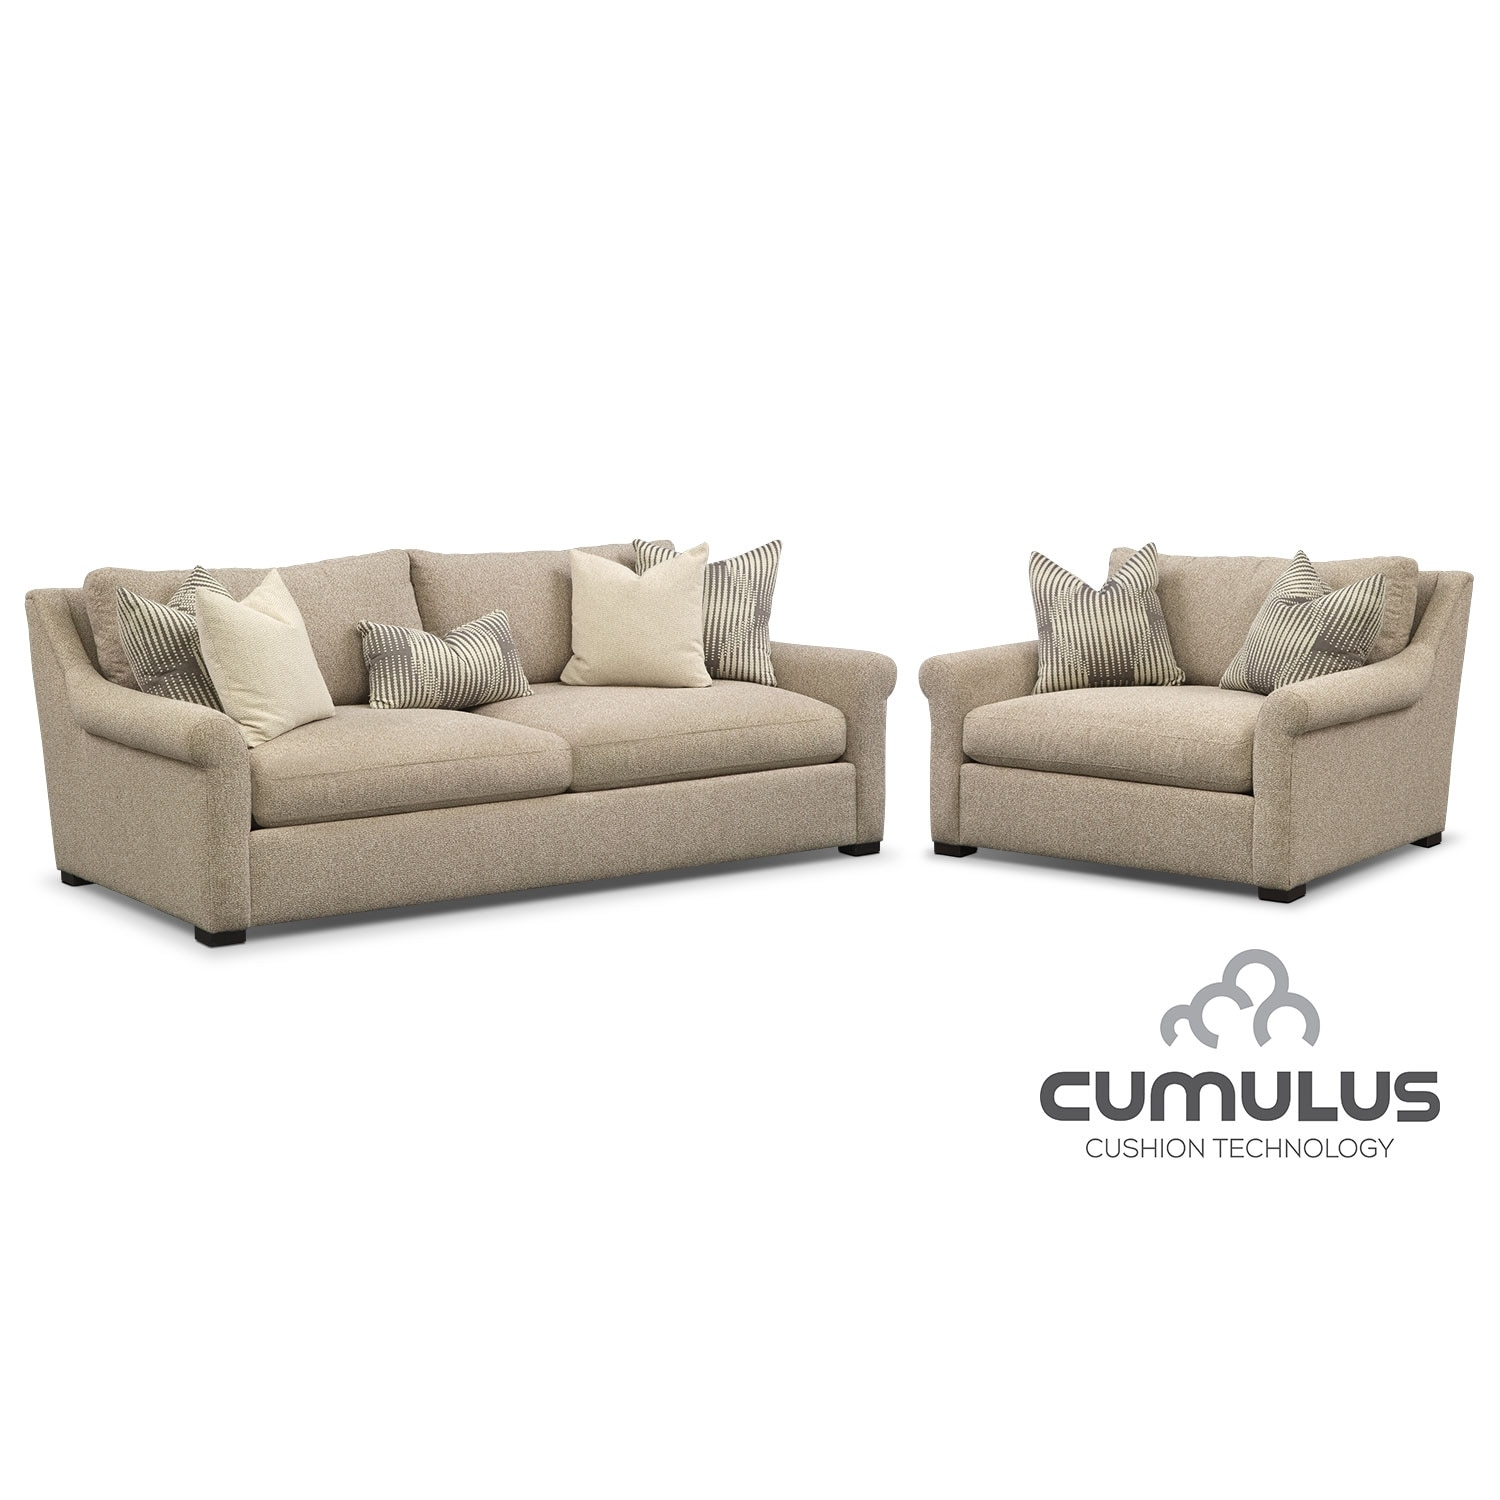 Living Room Furniture - Robertson Cumulus 2 Pc. Living Room Package w/ Chair